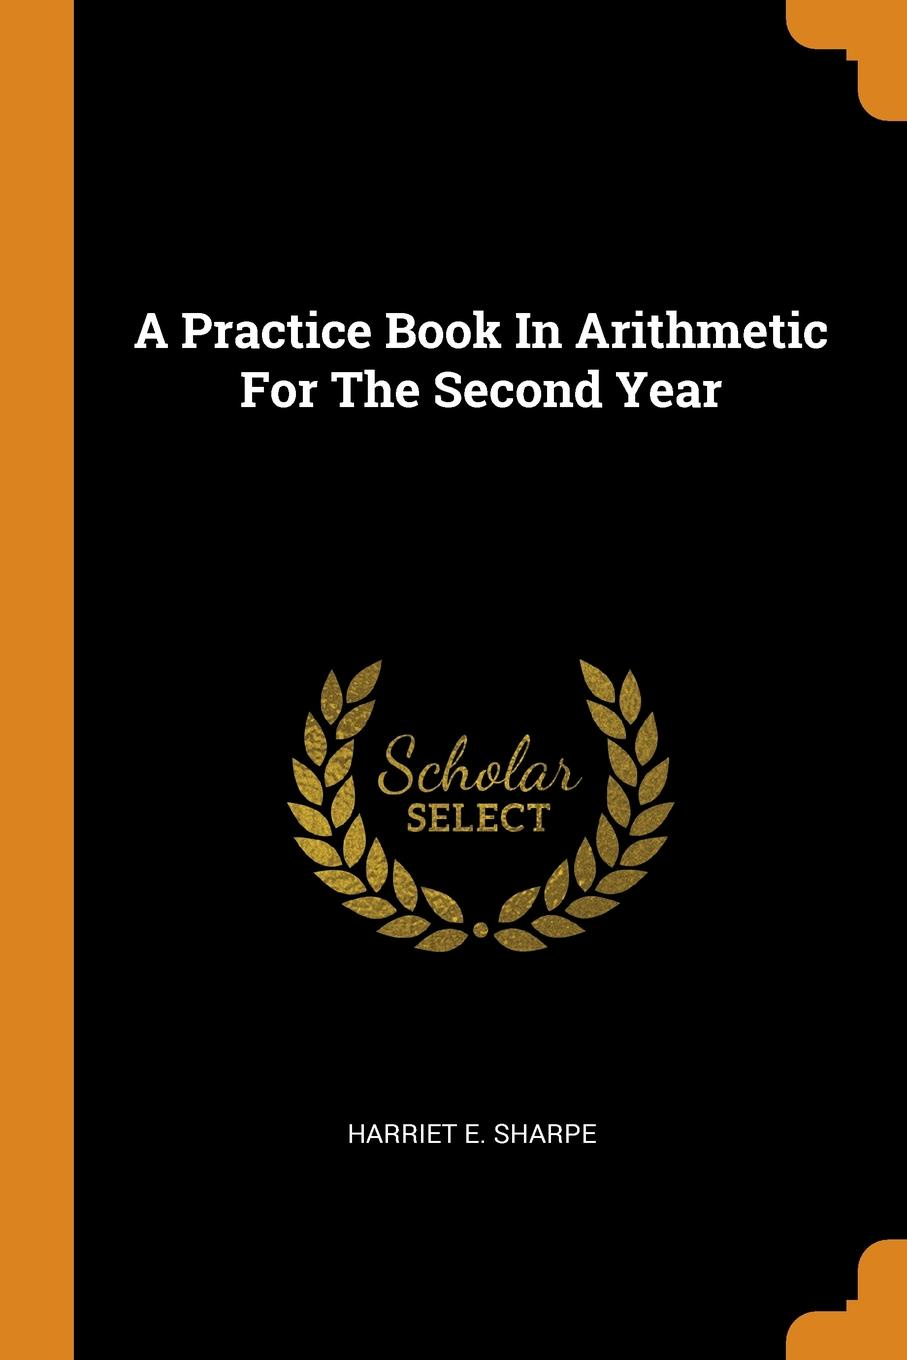 Harriet E. Sharpe A Practice Book In Arithmetic For The Second Year